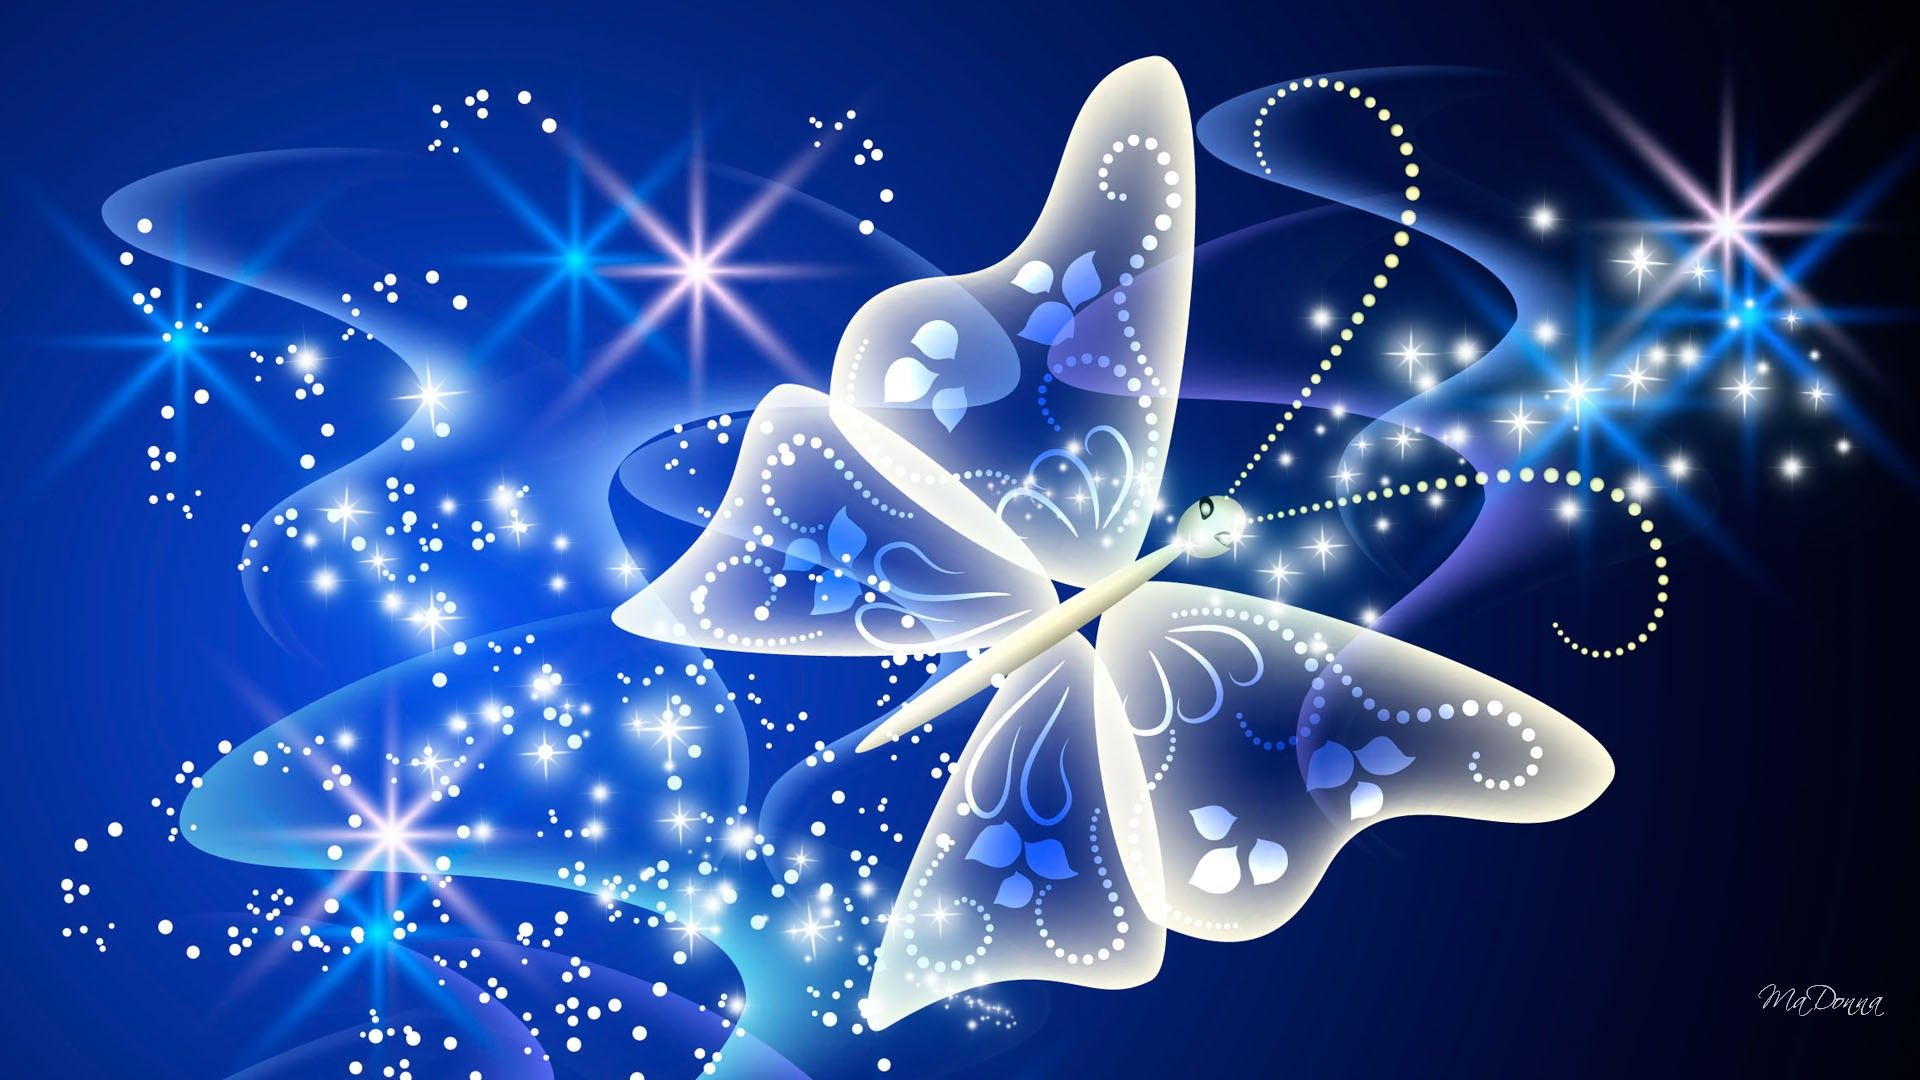 Magical pictures download the magical butterfly wallpaper 307053 magical pictures download the magical butterfly wallpaper 307053 voltagebd Image collections